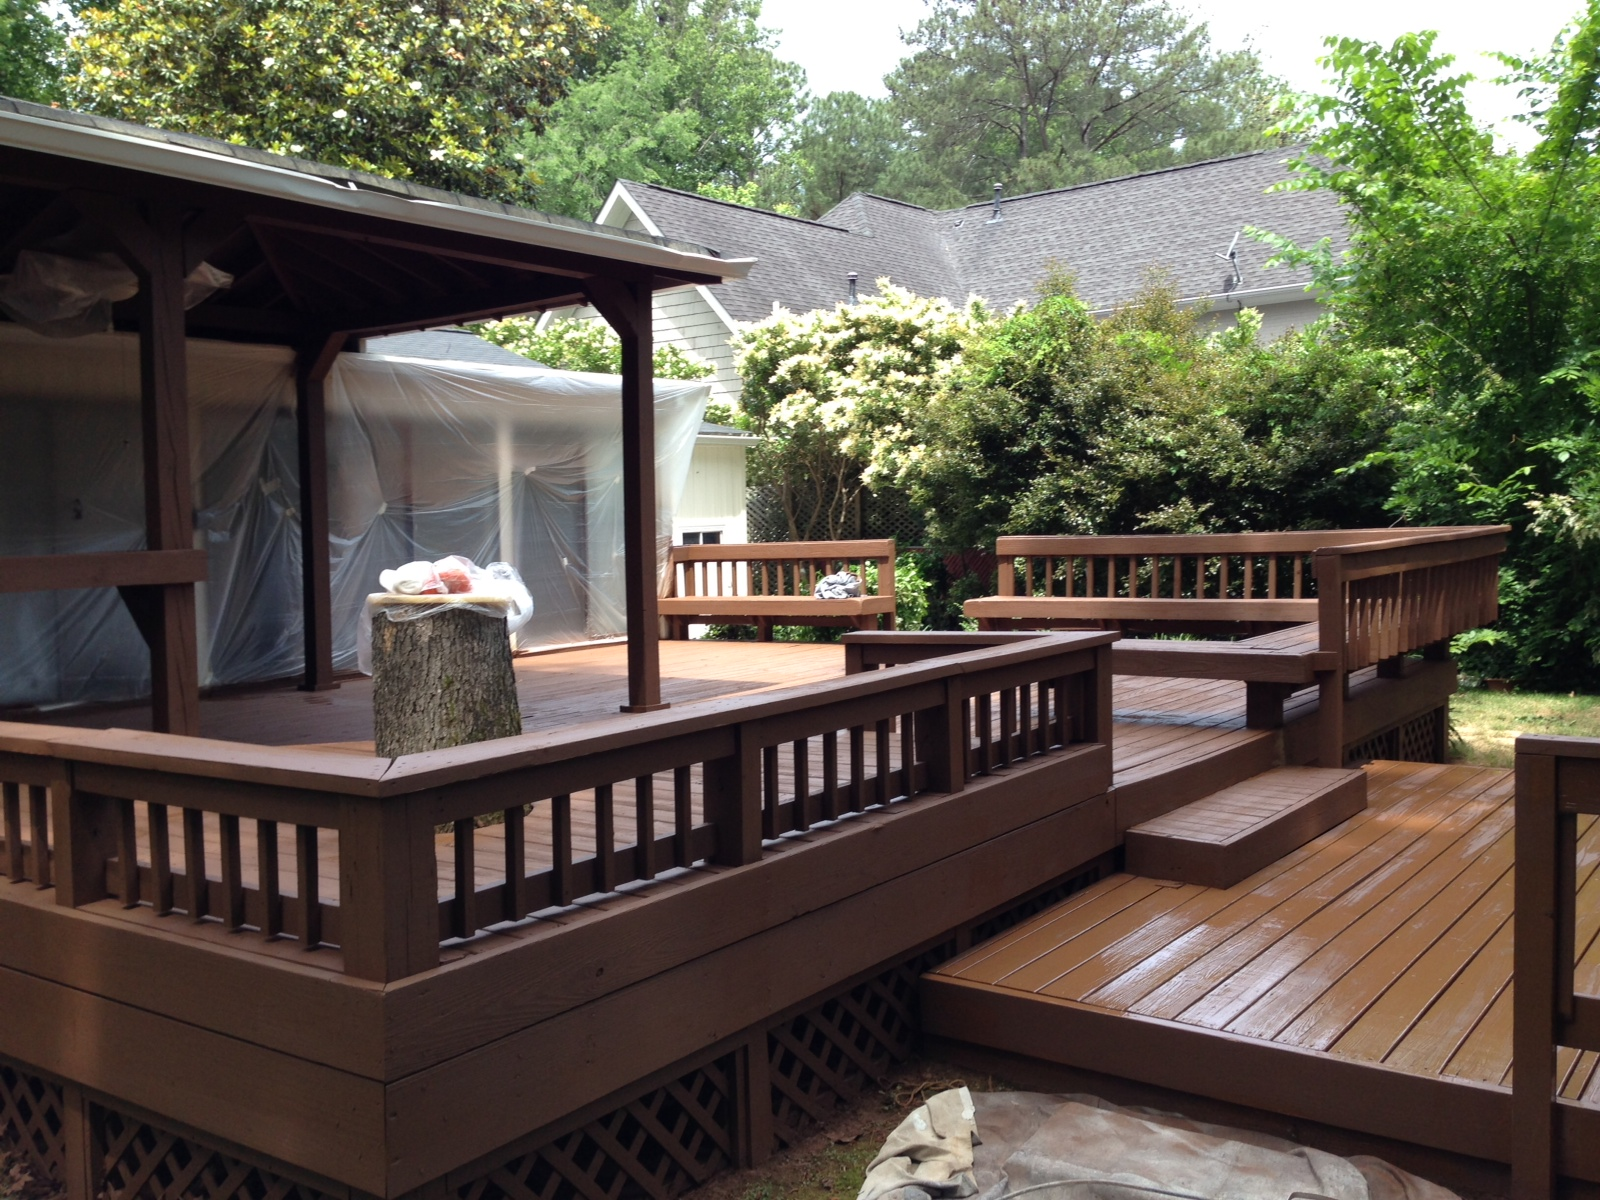 Atlanta curb appeal east cobb and sandy spring bathrooms for Deck designer